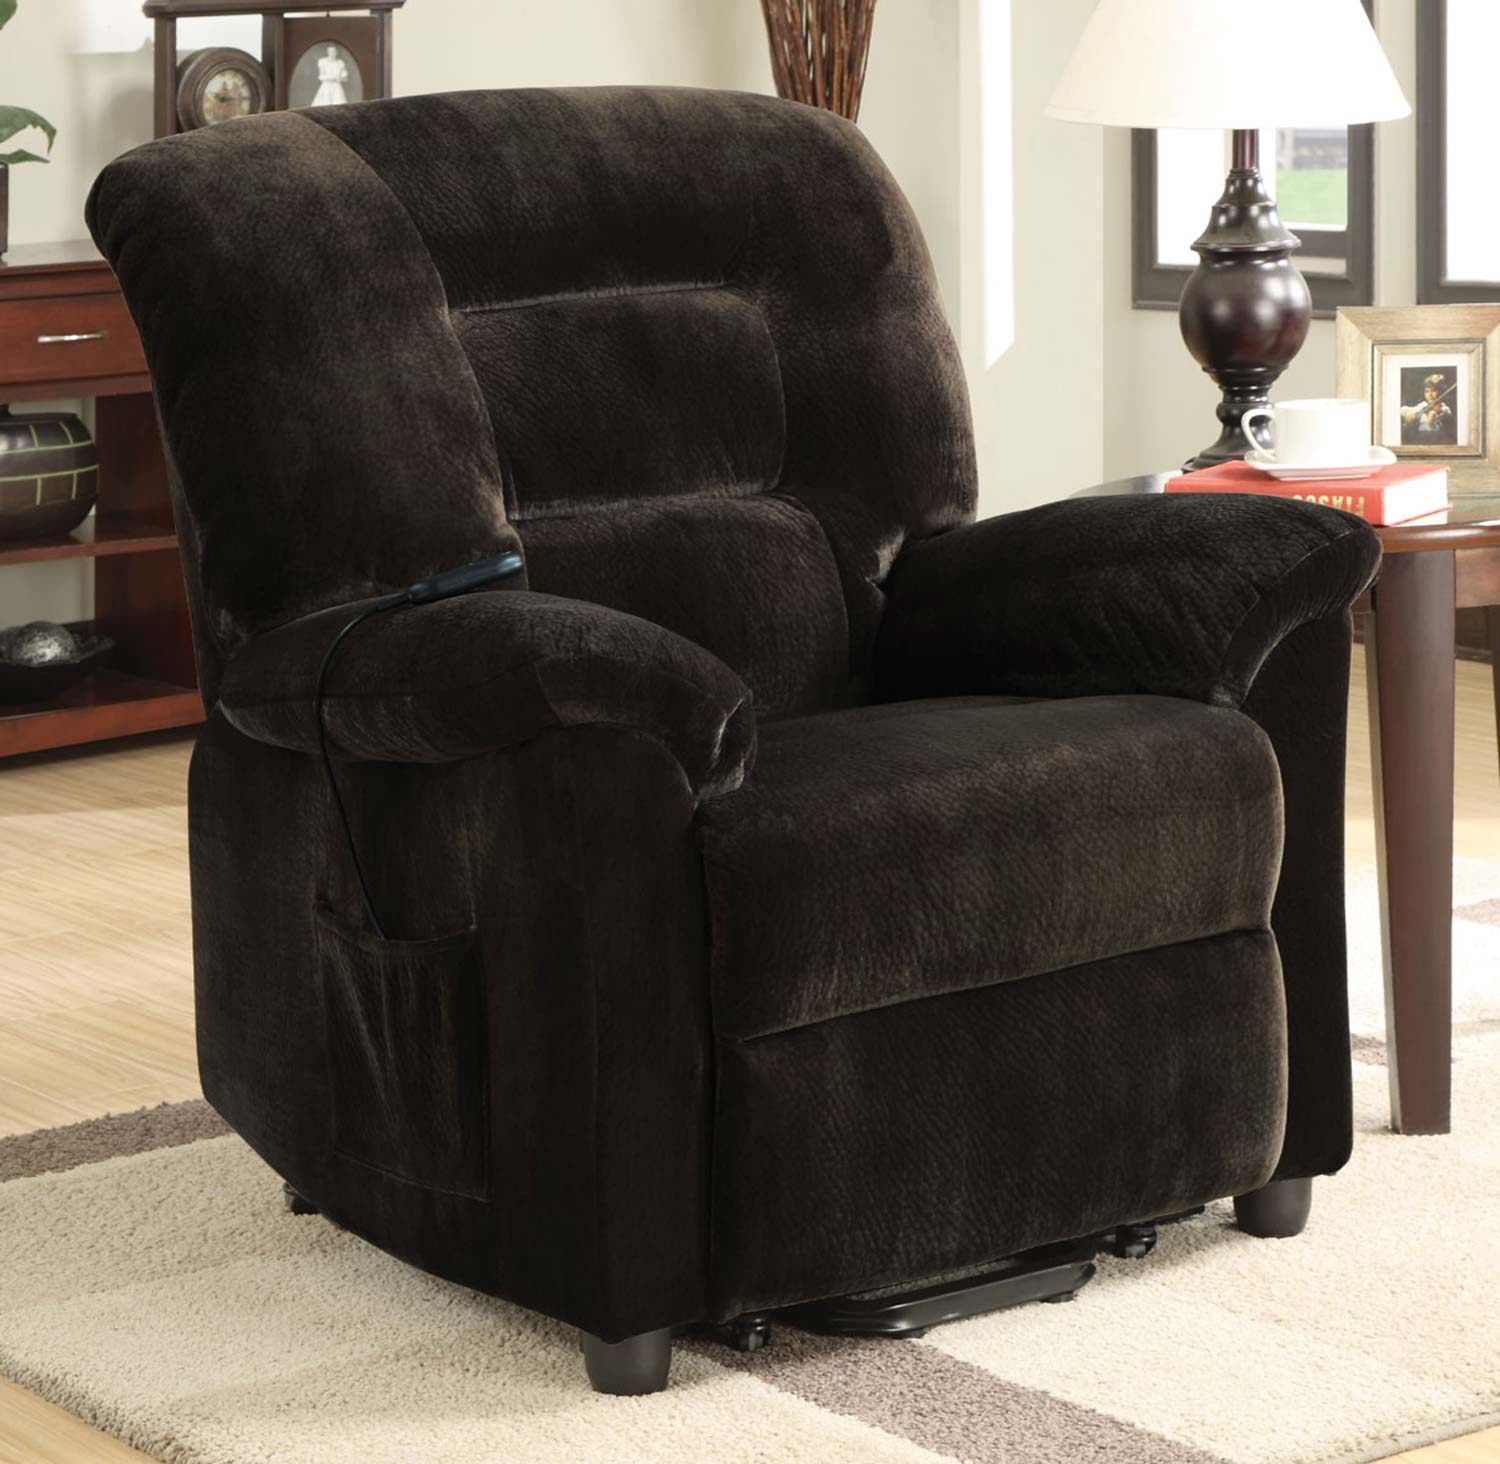 Coaster 601026 Power Lift Recliner - Chocolate